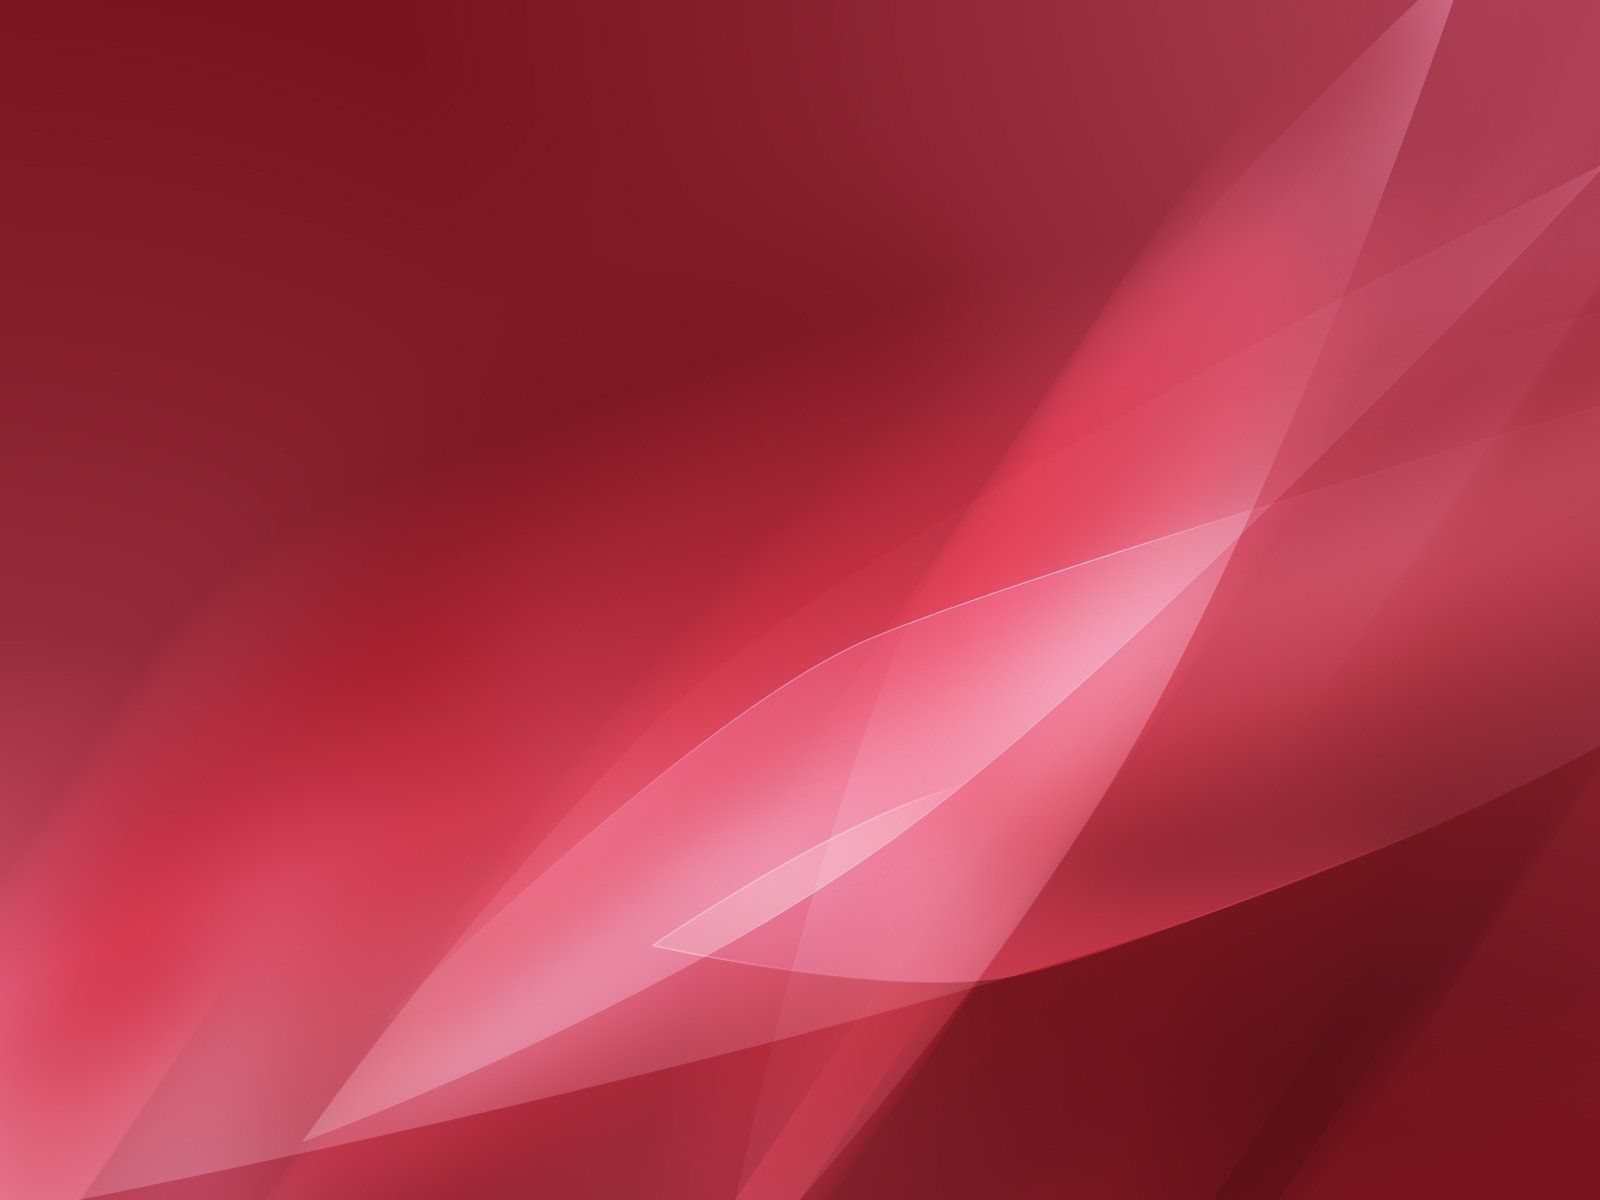 Red Background In Different Shades Of Red Color Abstract